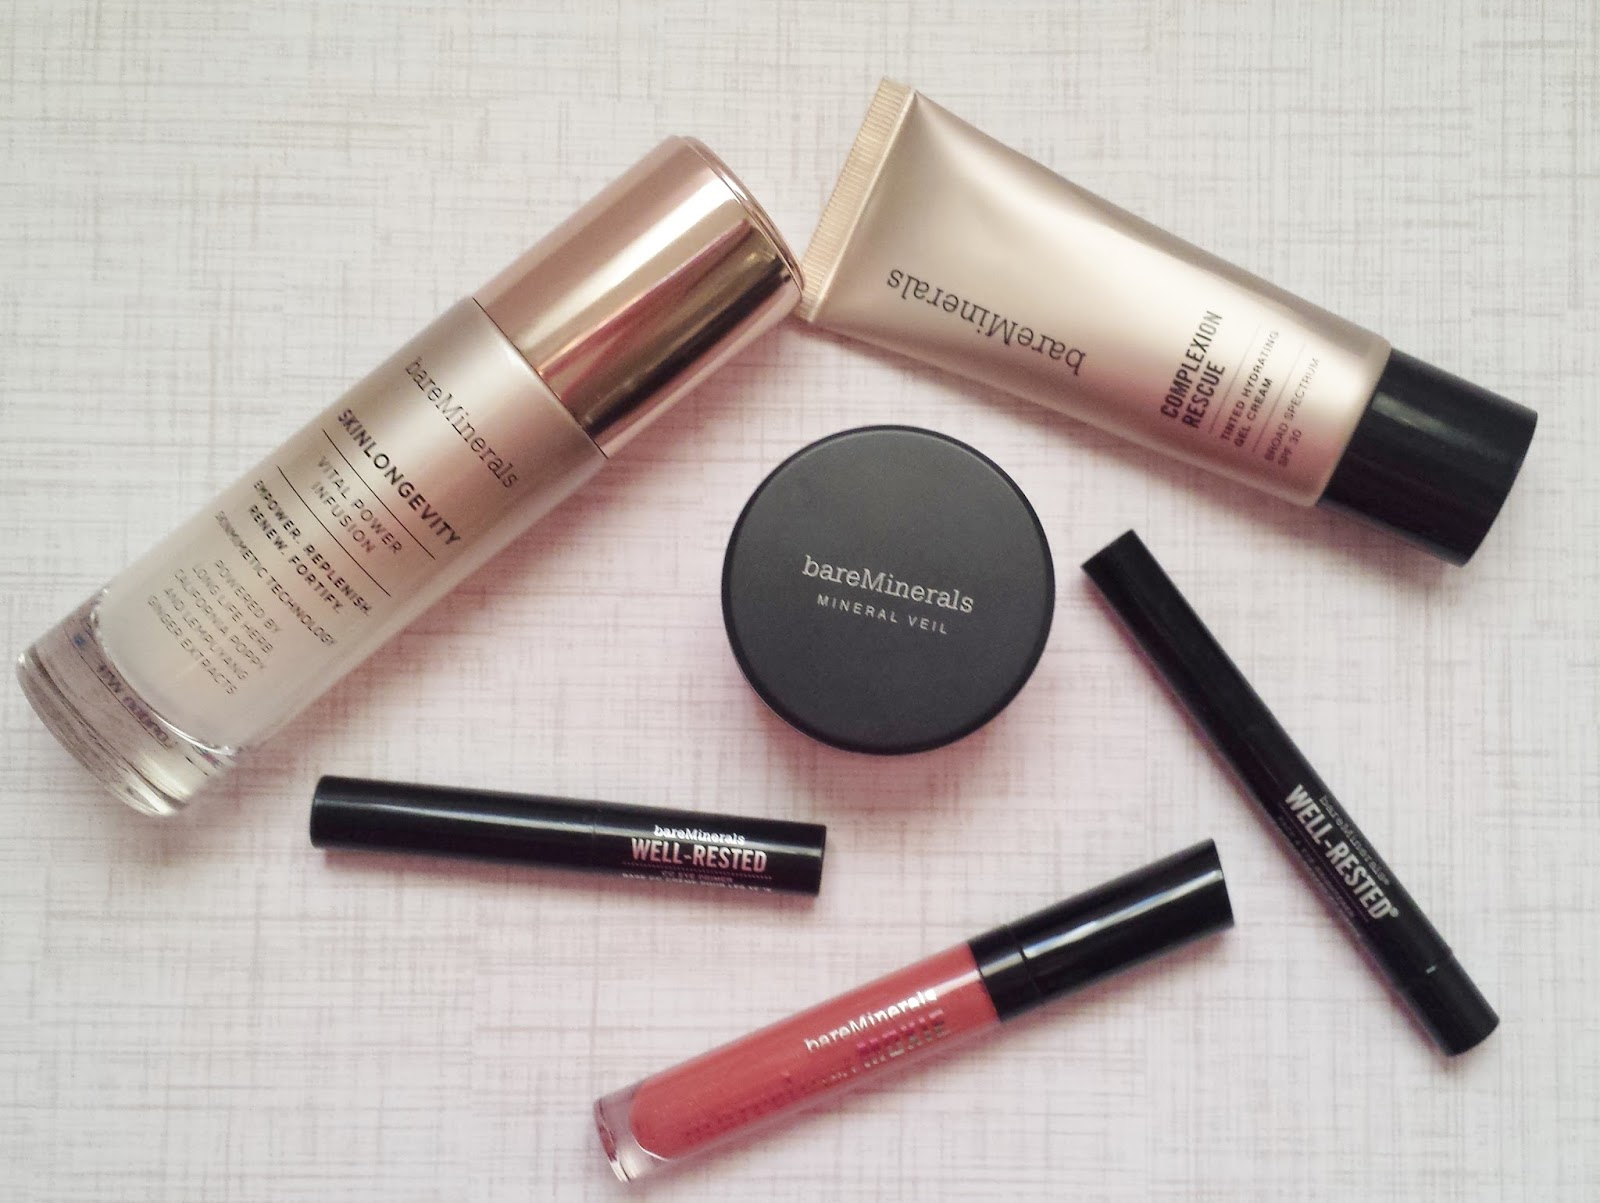 bareminerals product review